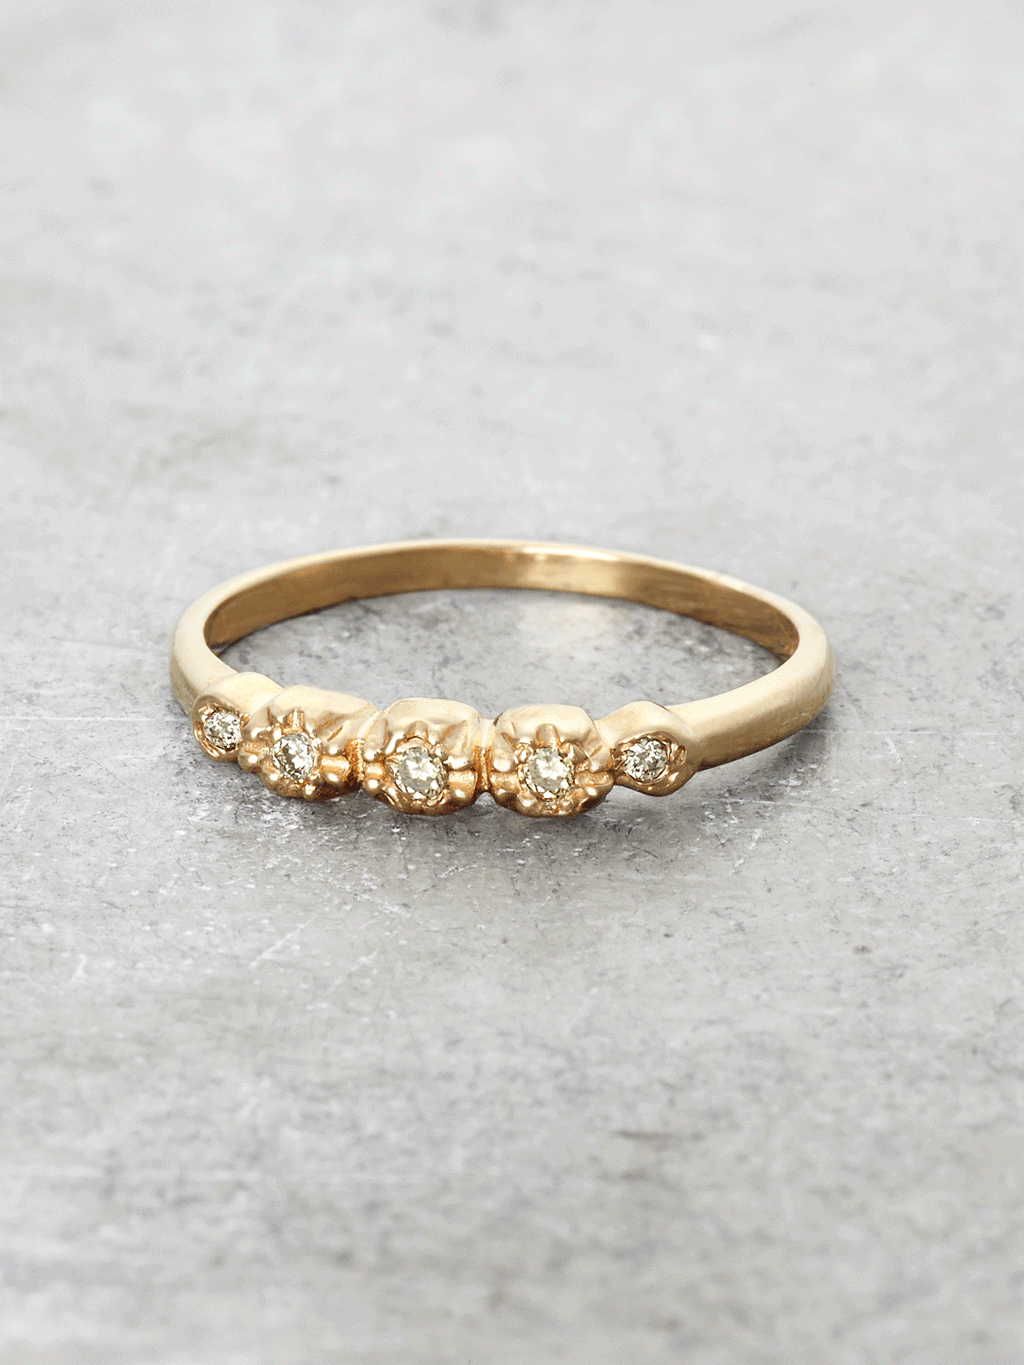 Diamond Petals Ring - 5 Diamonds